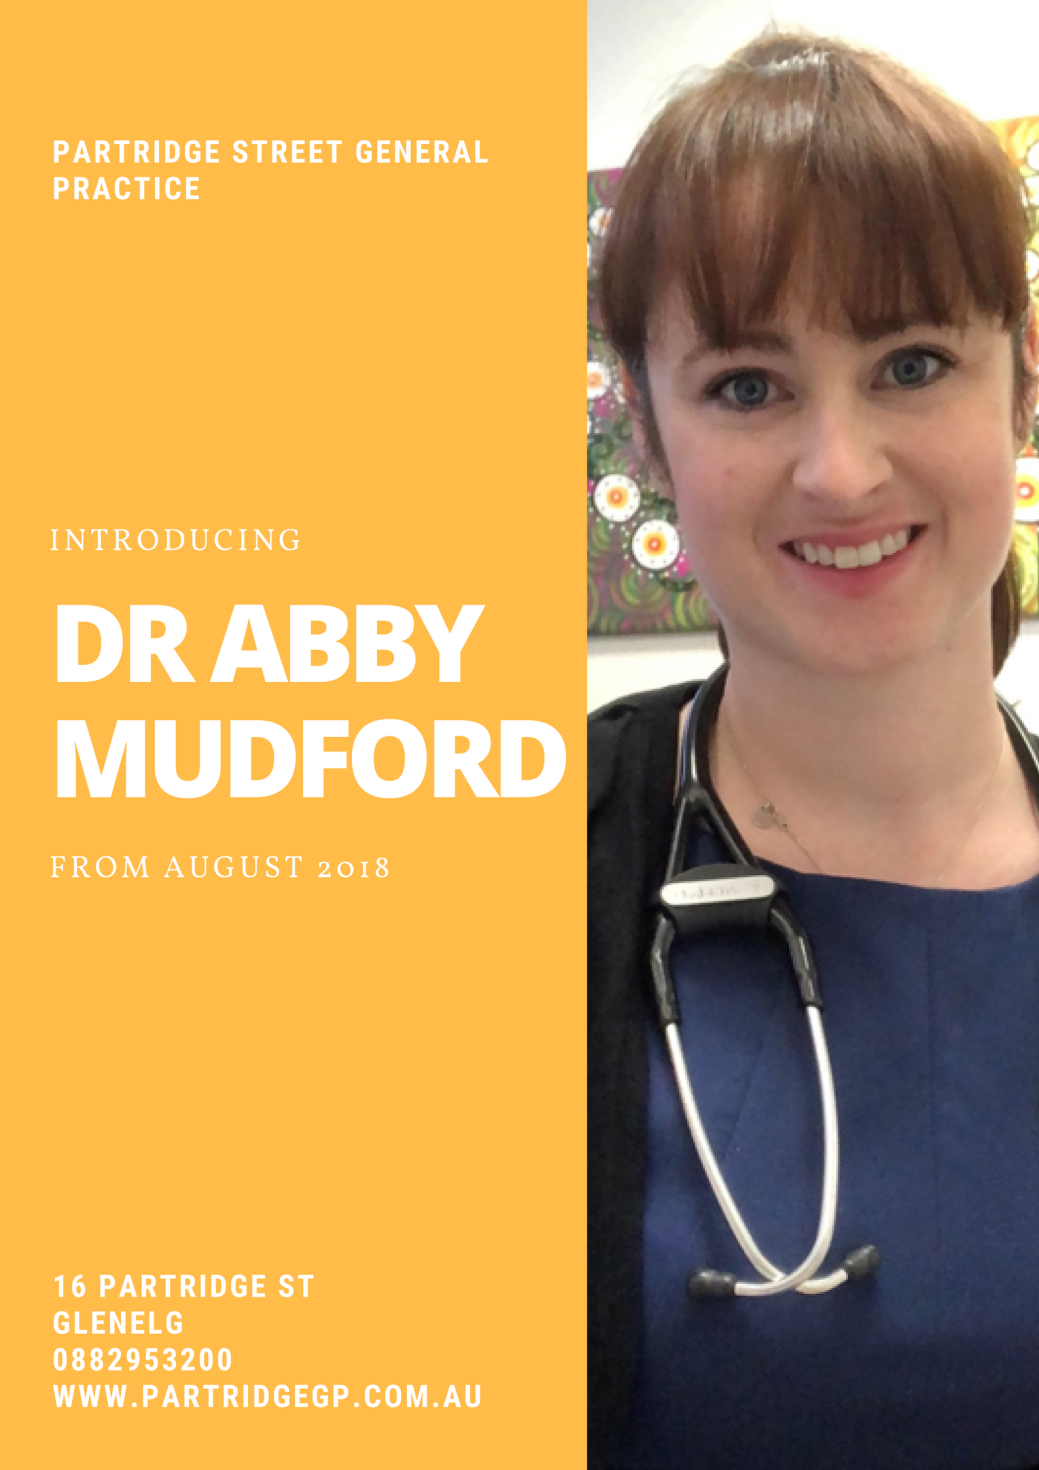 dr abby mudford at Partridge Street General Practice3